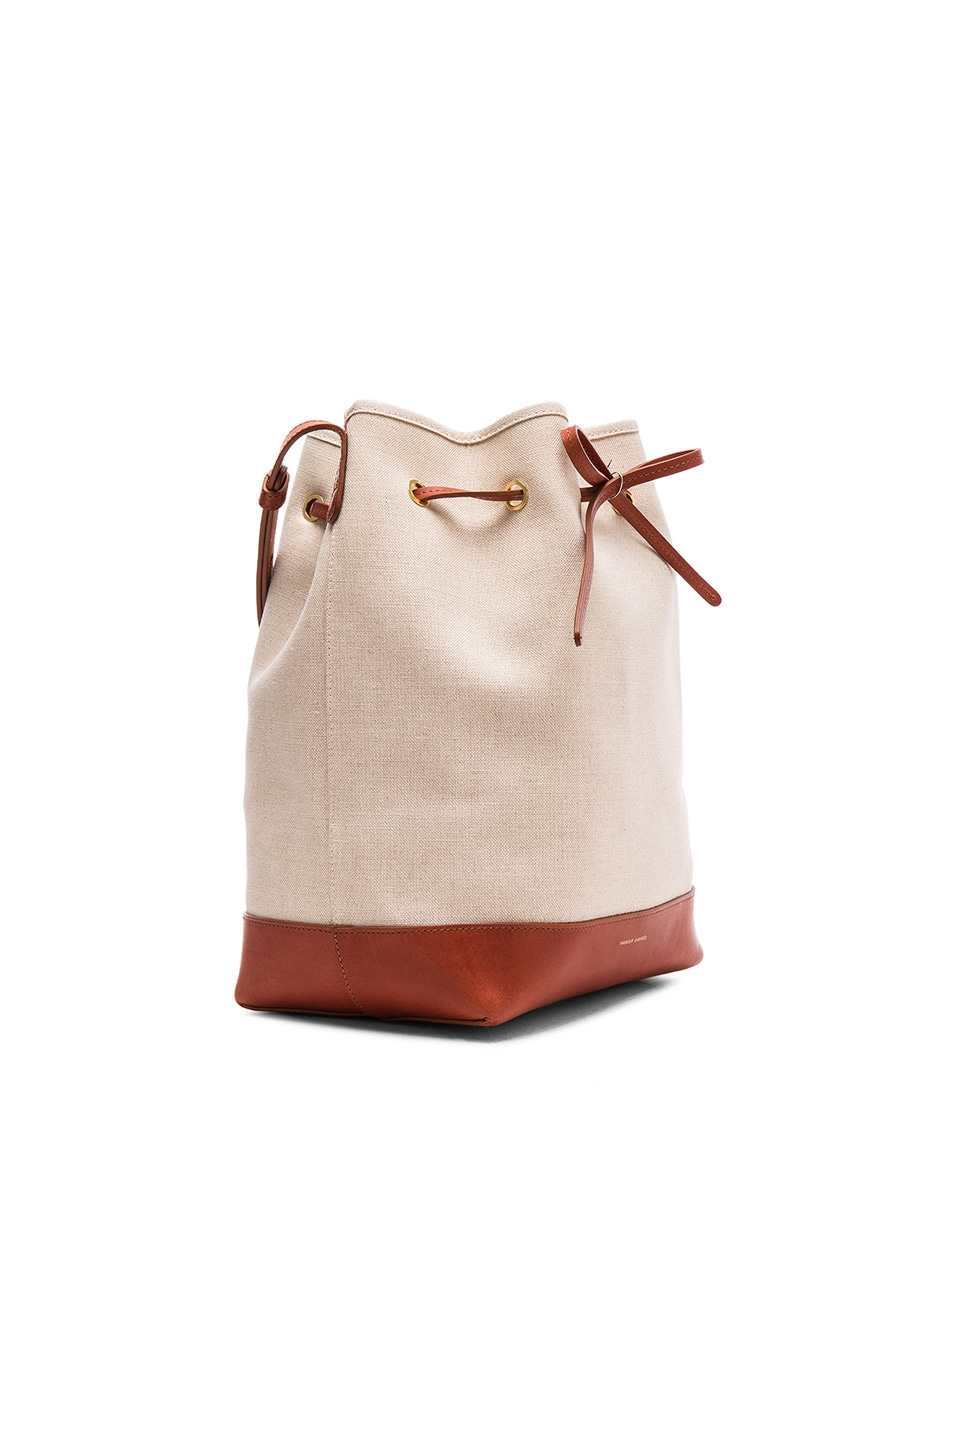 mansur gavriel canvas bucket bag. Black Bedroom Furniture Sets. Home Design Ideas